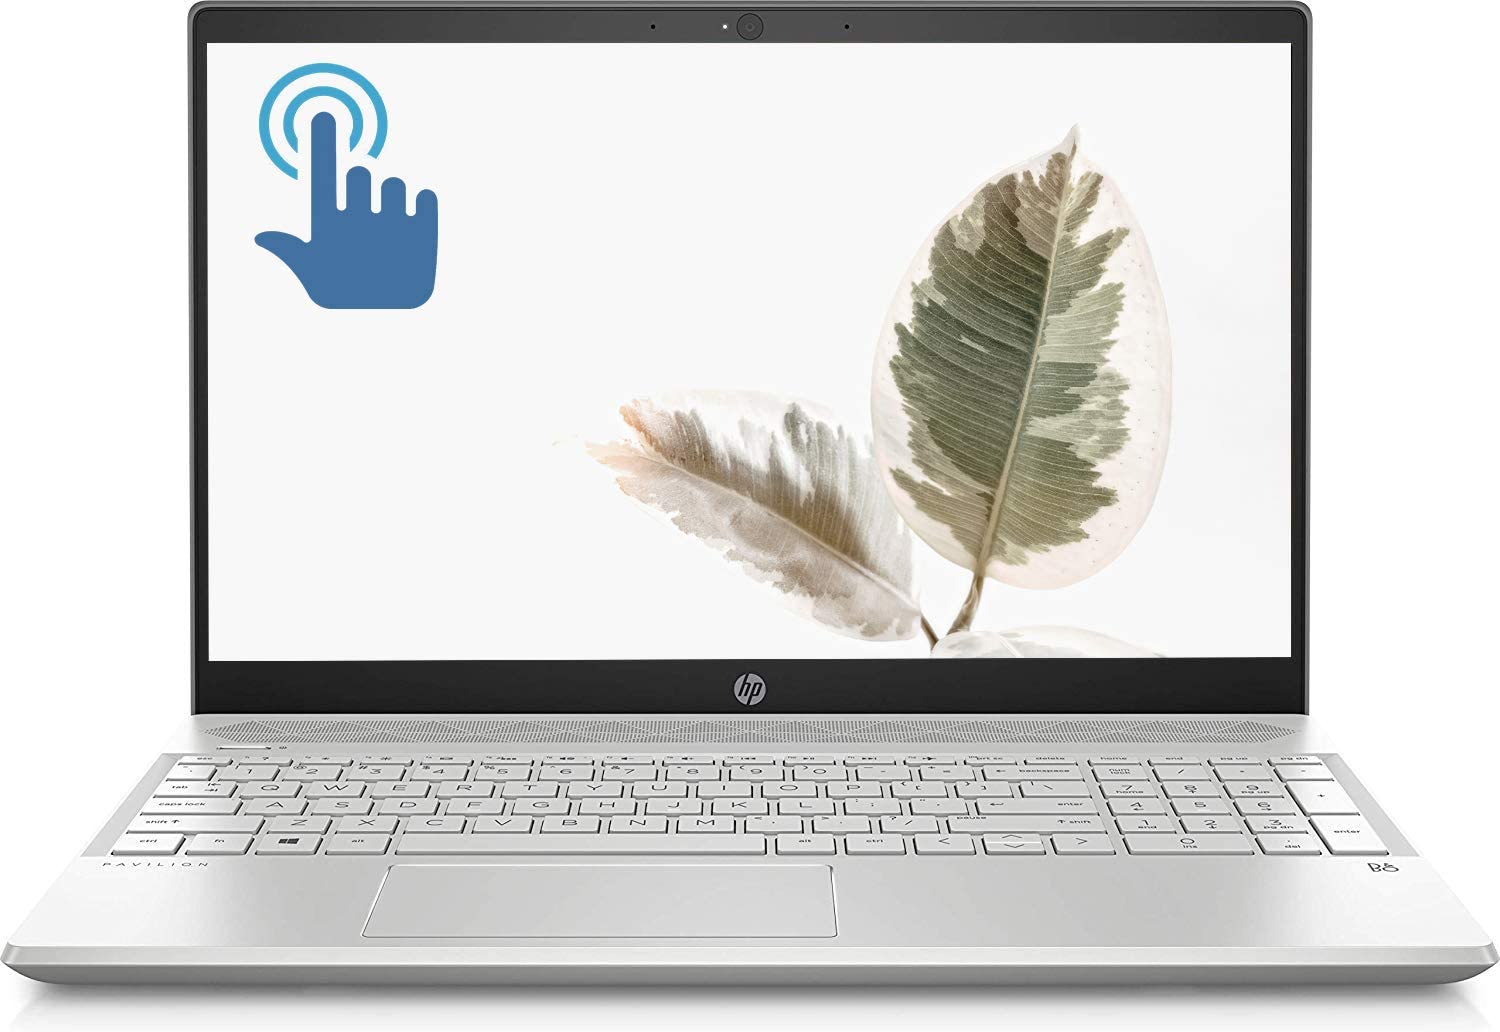 "HP Pavilion Premium Laptop Computer PC, 15.6"" Full HD IPS Touchscreen Display, 10th Gen Intel Quad-Core i5-1035G1, 8GB DDR4 256GB PCIe SSD Backlit Keyboard WiFi HDMI USB-C BT 5.0 HD Webcam Win 10"